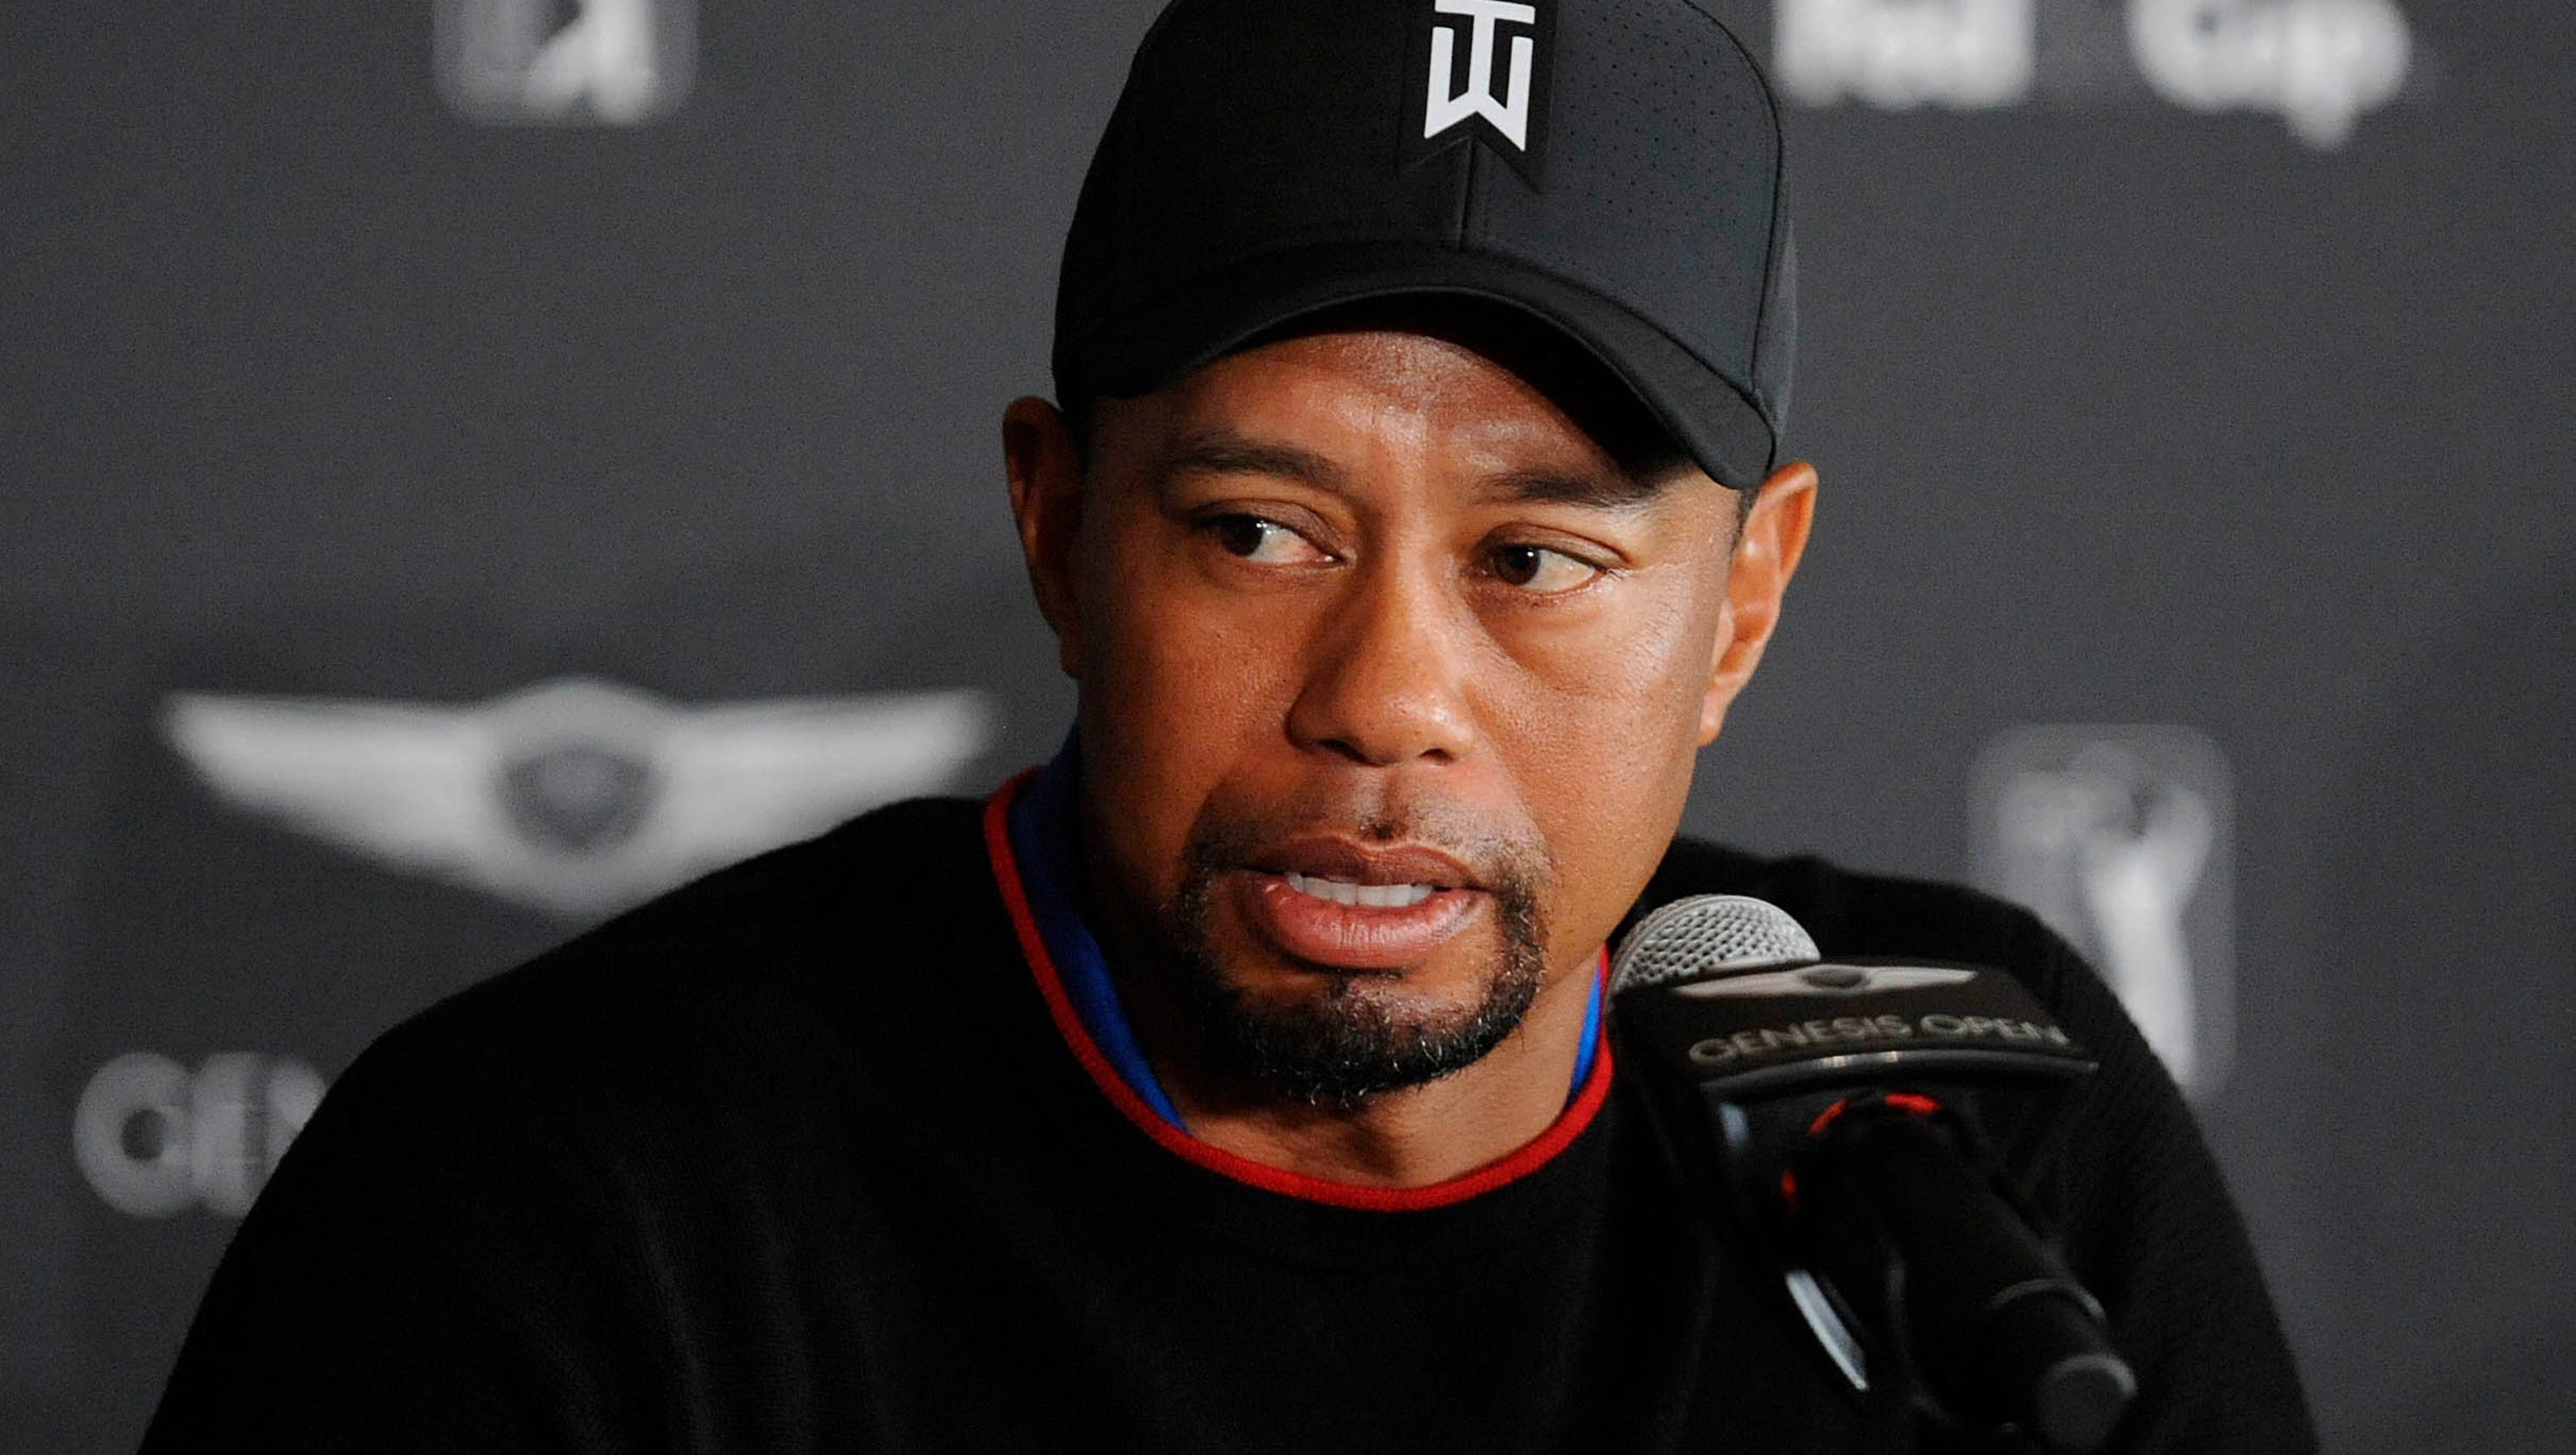 Tiger Woods says he's getting professional help to manage meds